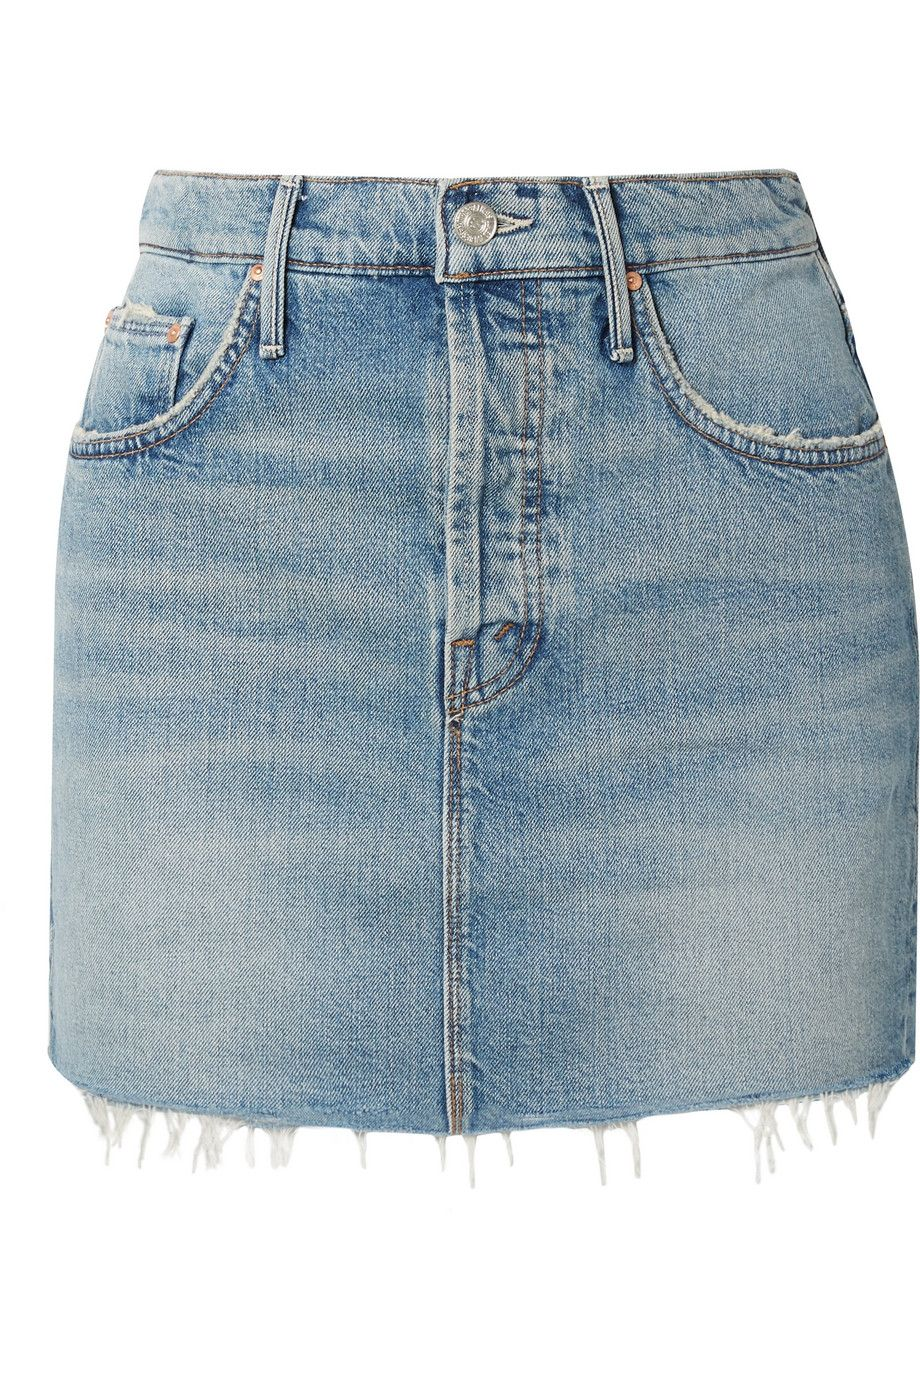 6866373d5c02 Jean Skirt Outfits - How to Wear a Jean Denim Mini Skirt